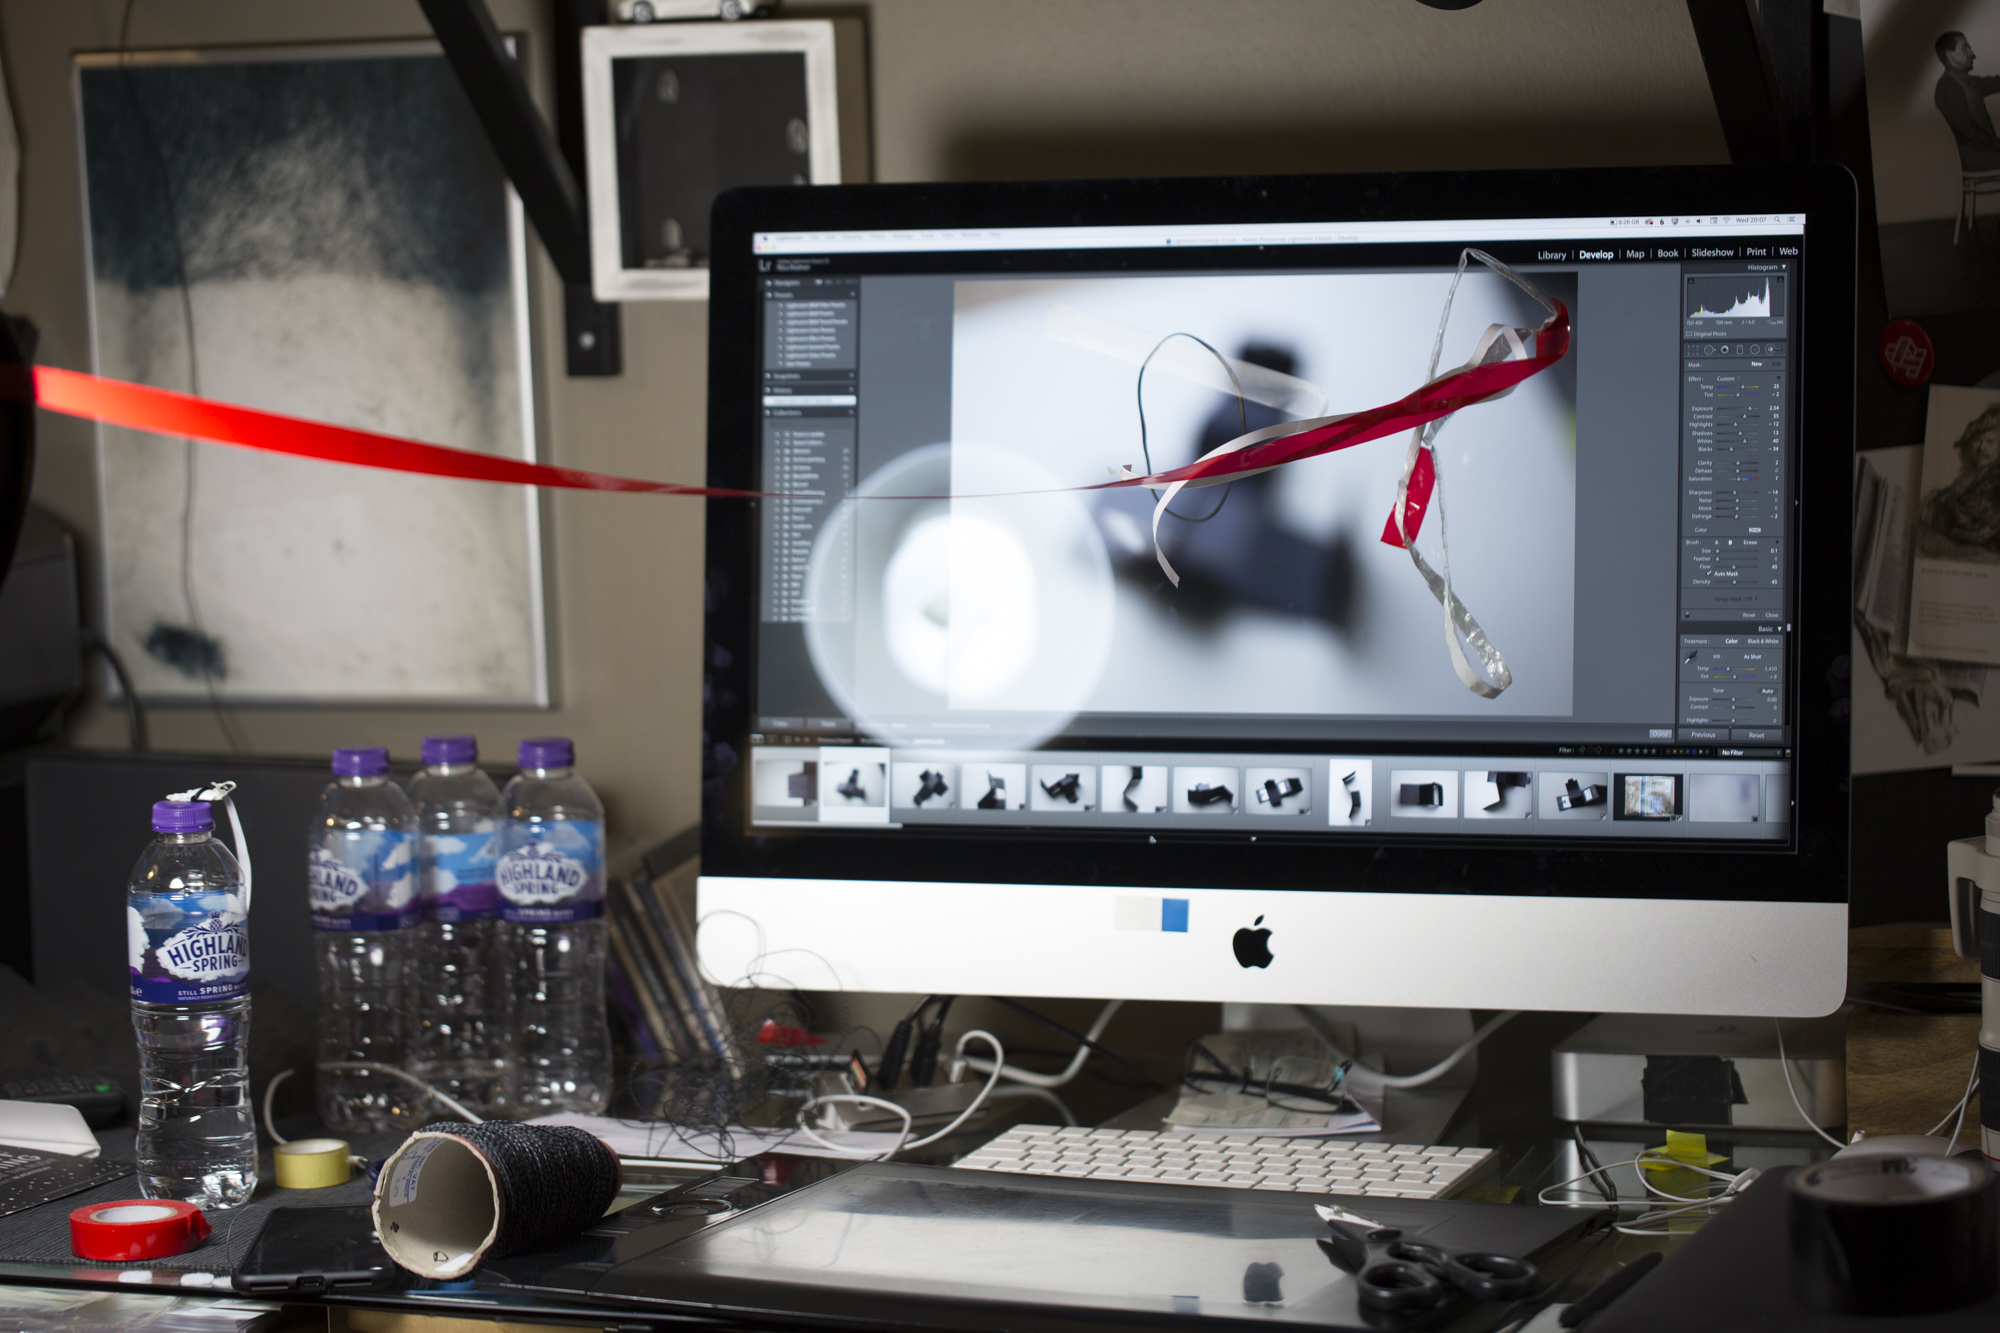 Photographing the red tape on top of the image displayed in the screen.